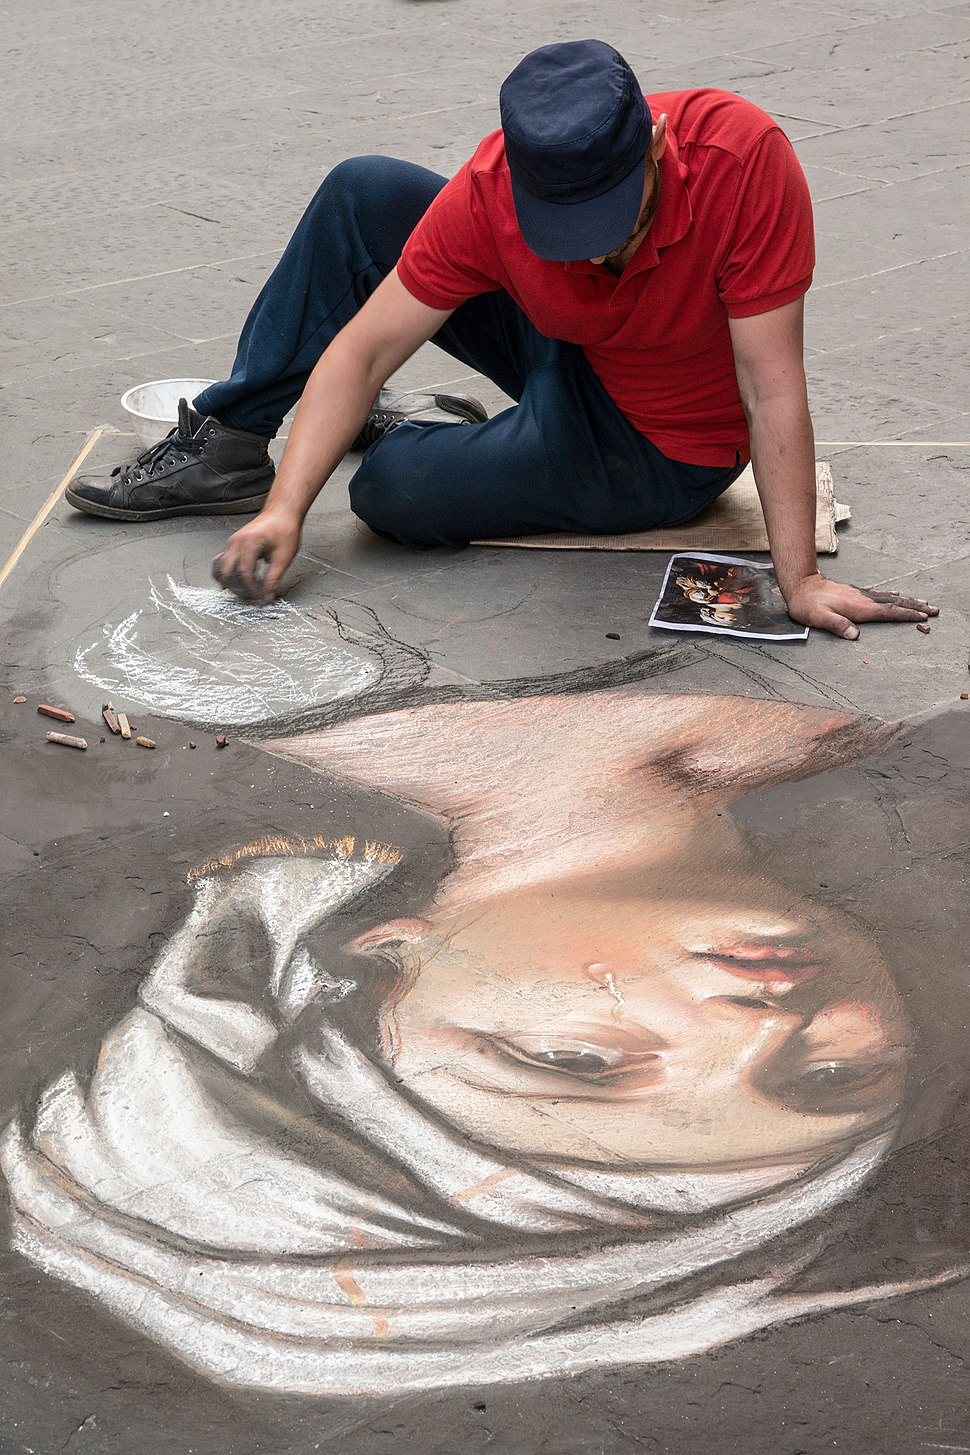 Chalk artist on a street, Florence, Italy